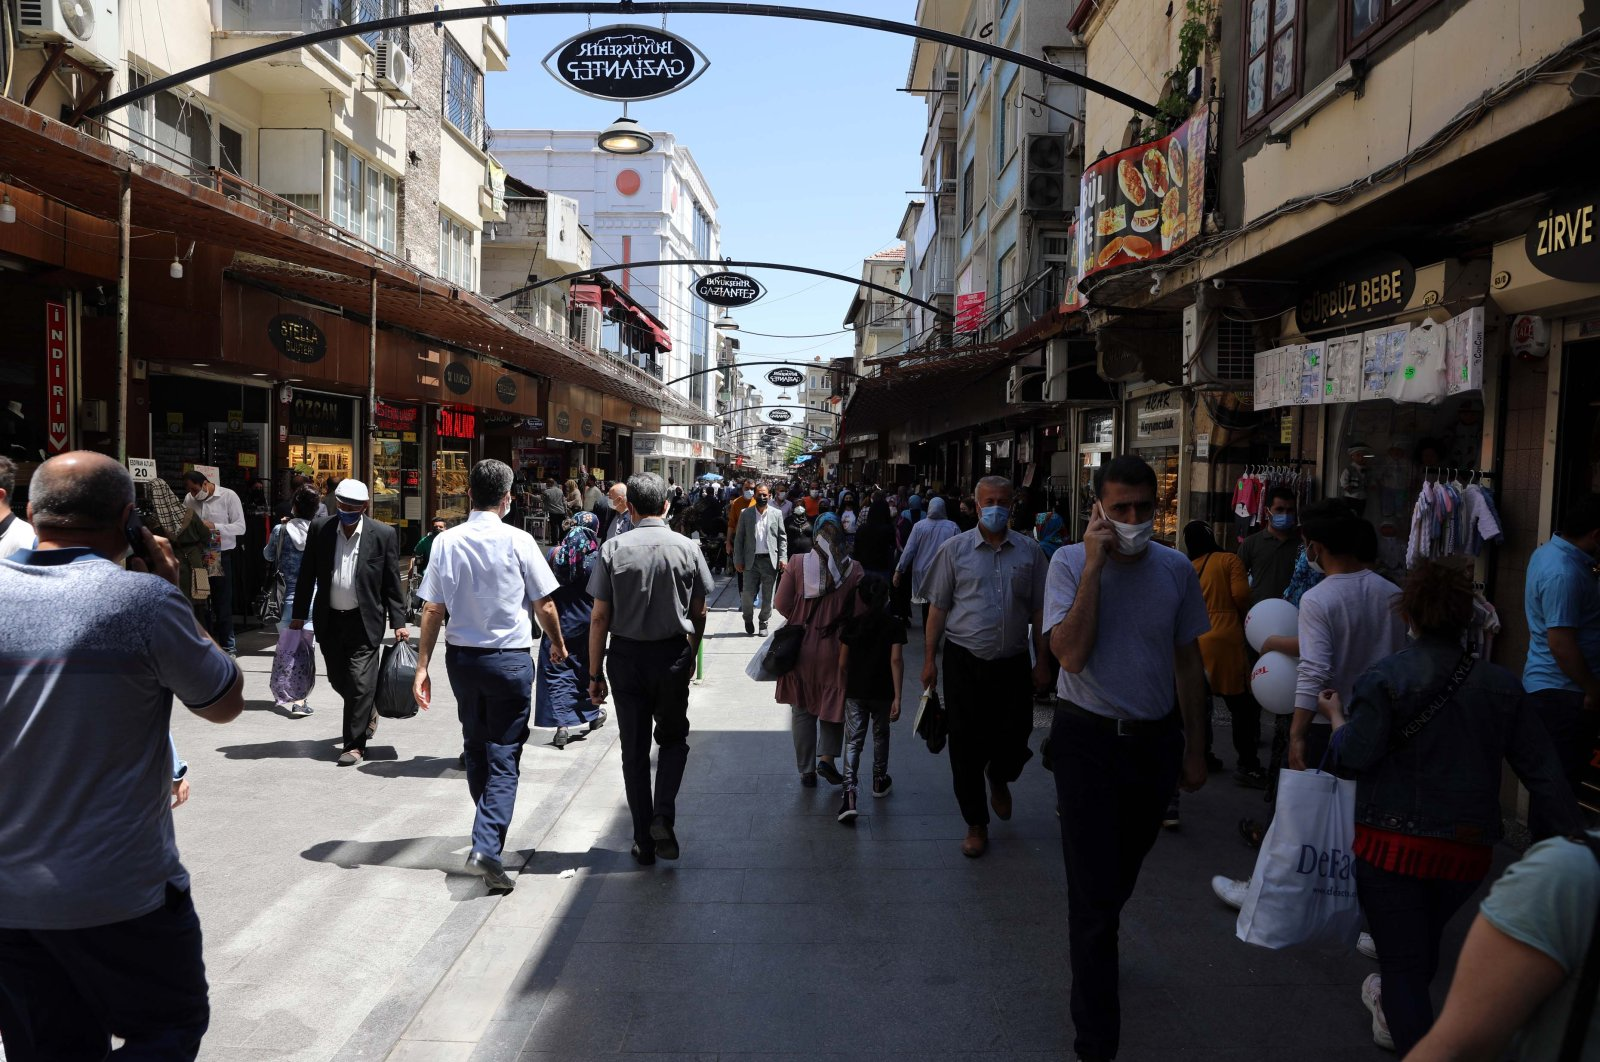 People wearing protective masks against COVID-19 walk on a street in Gaziantep, southern Turkey, April 27, 2021. (DHA PHOTO)